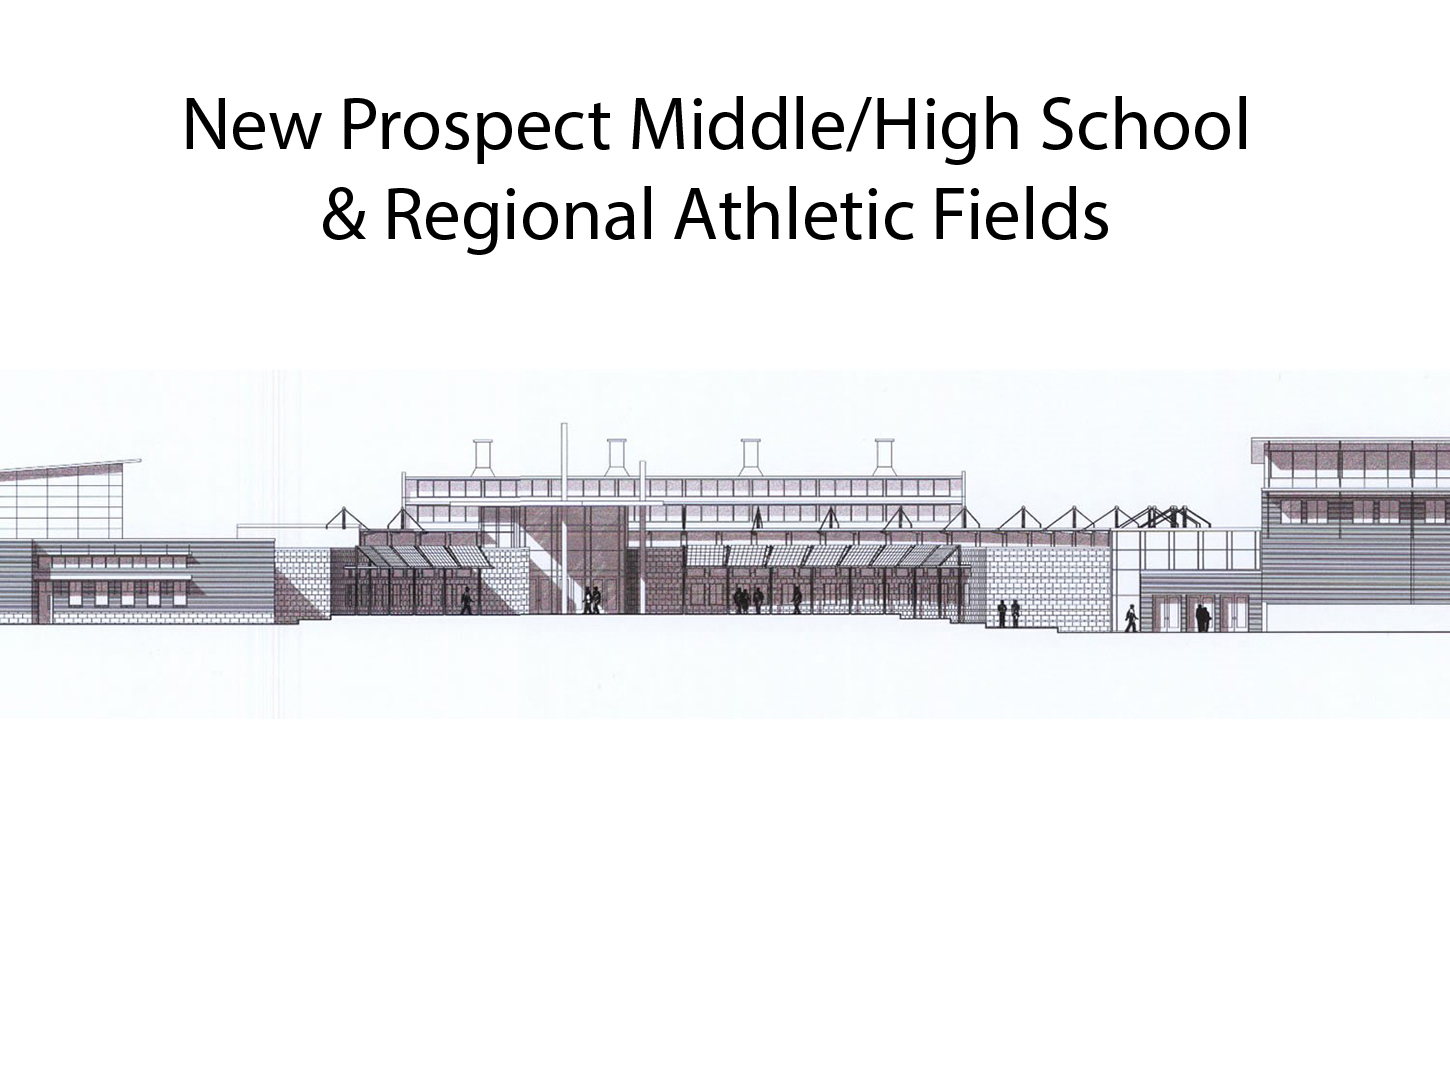 31-glenwood-fort_collins-new_prospect_middle_high_school-new_houses_for_sale